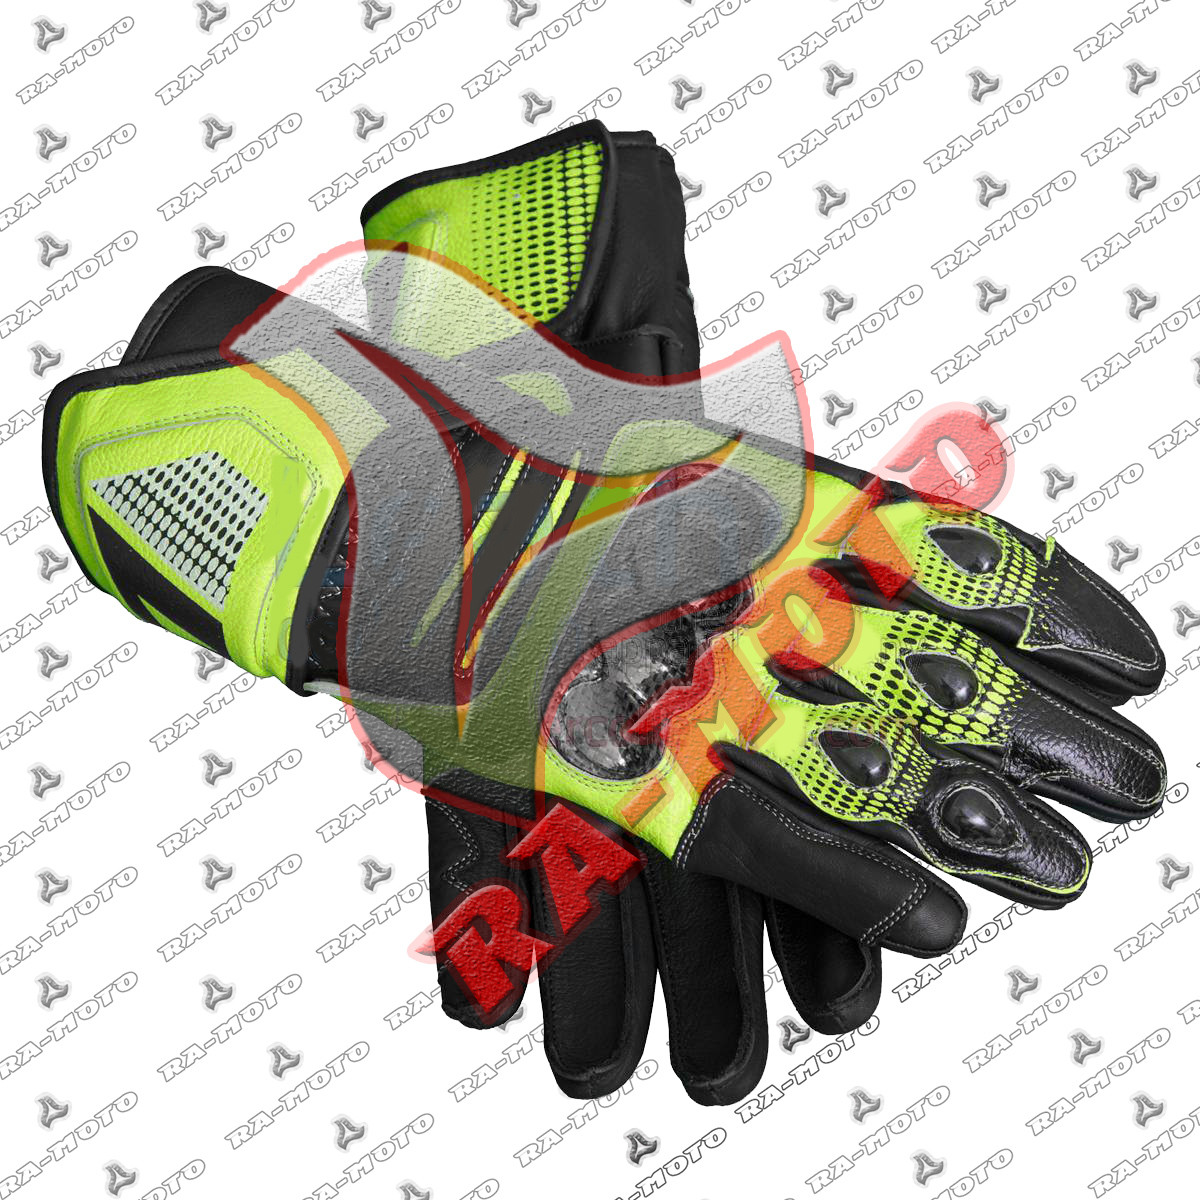 RA-15231 Valentino Rossi Motorcycle Race Gloves